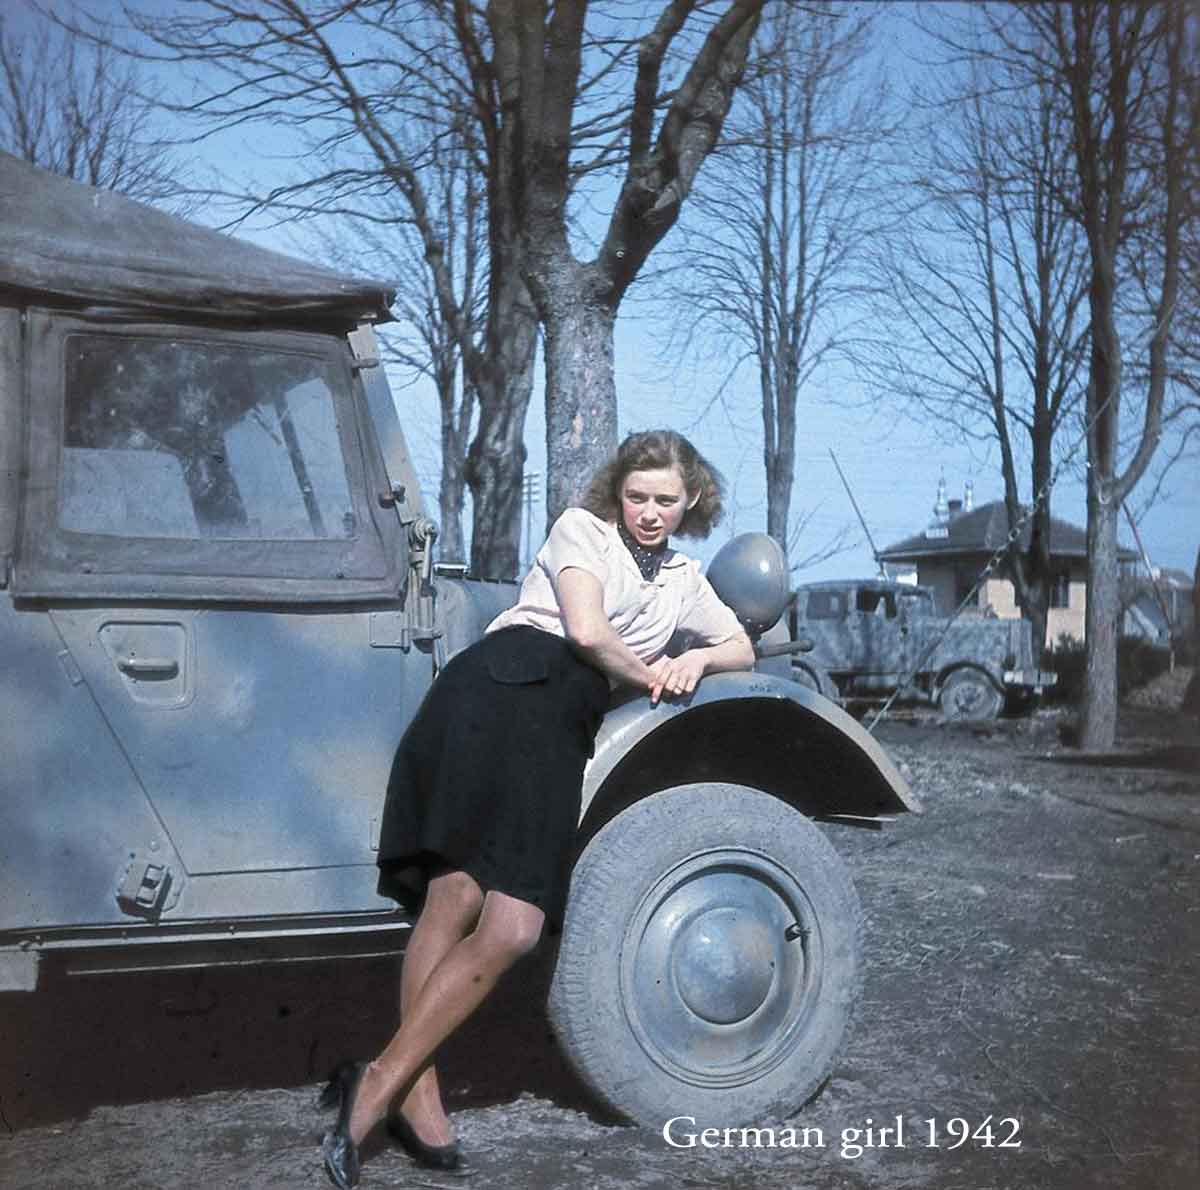 German Fashion in the 1940s